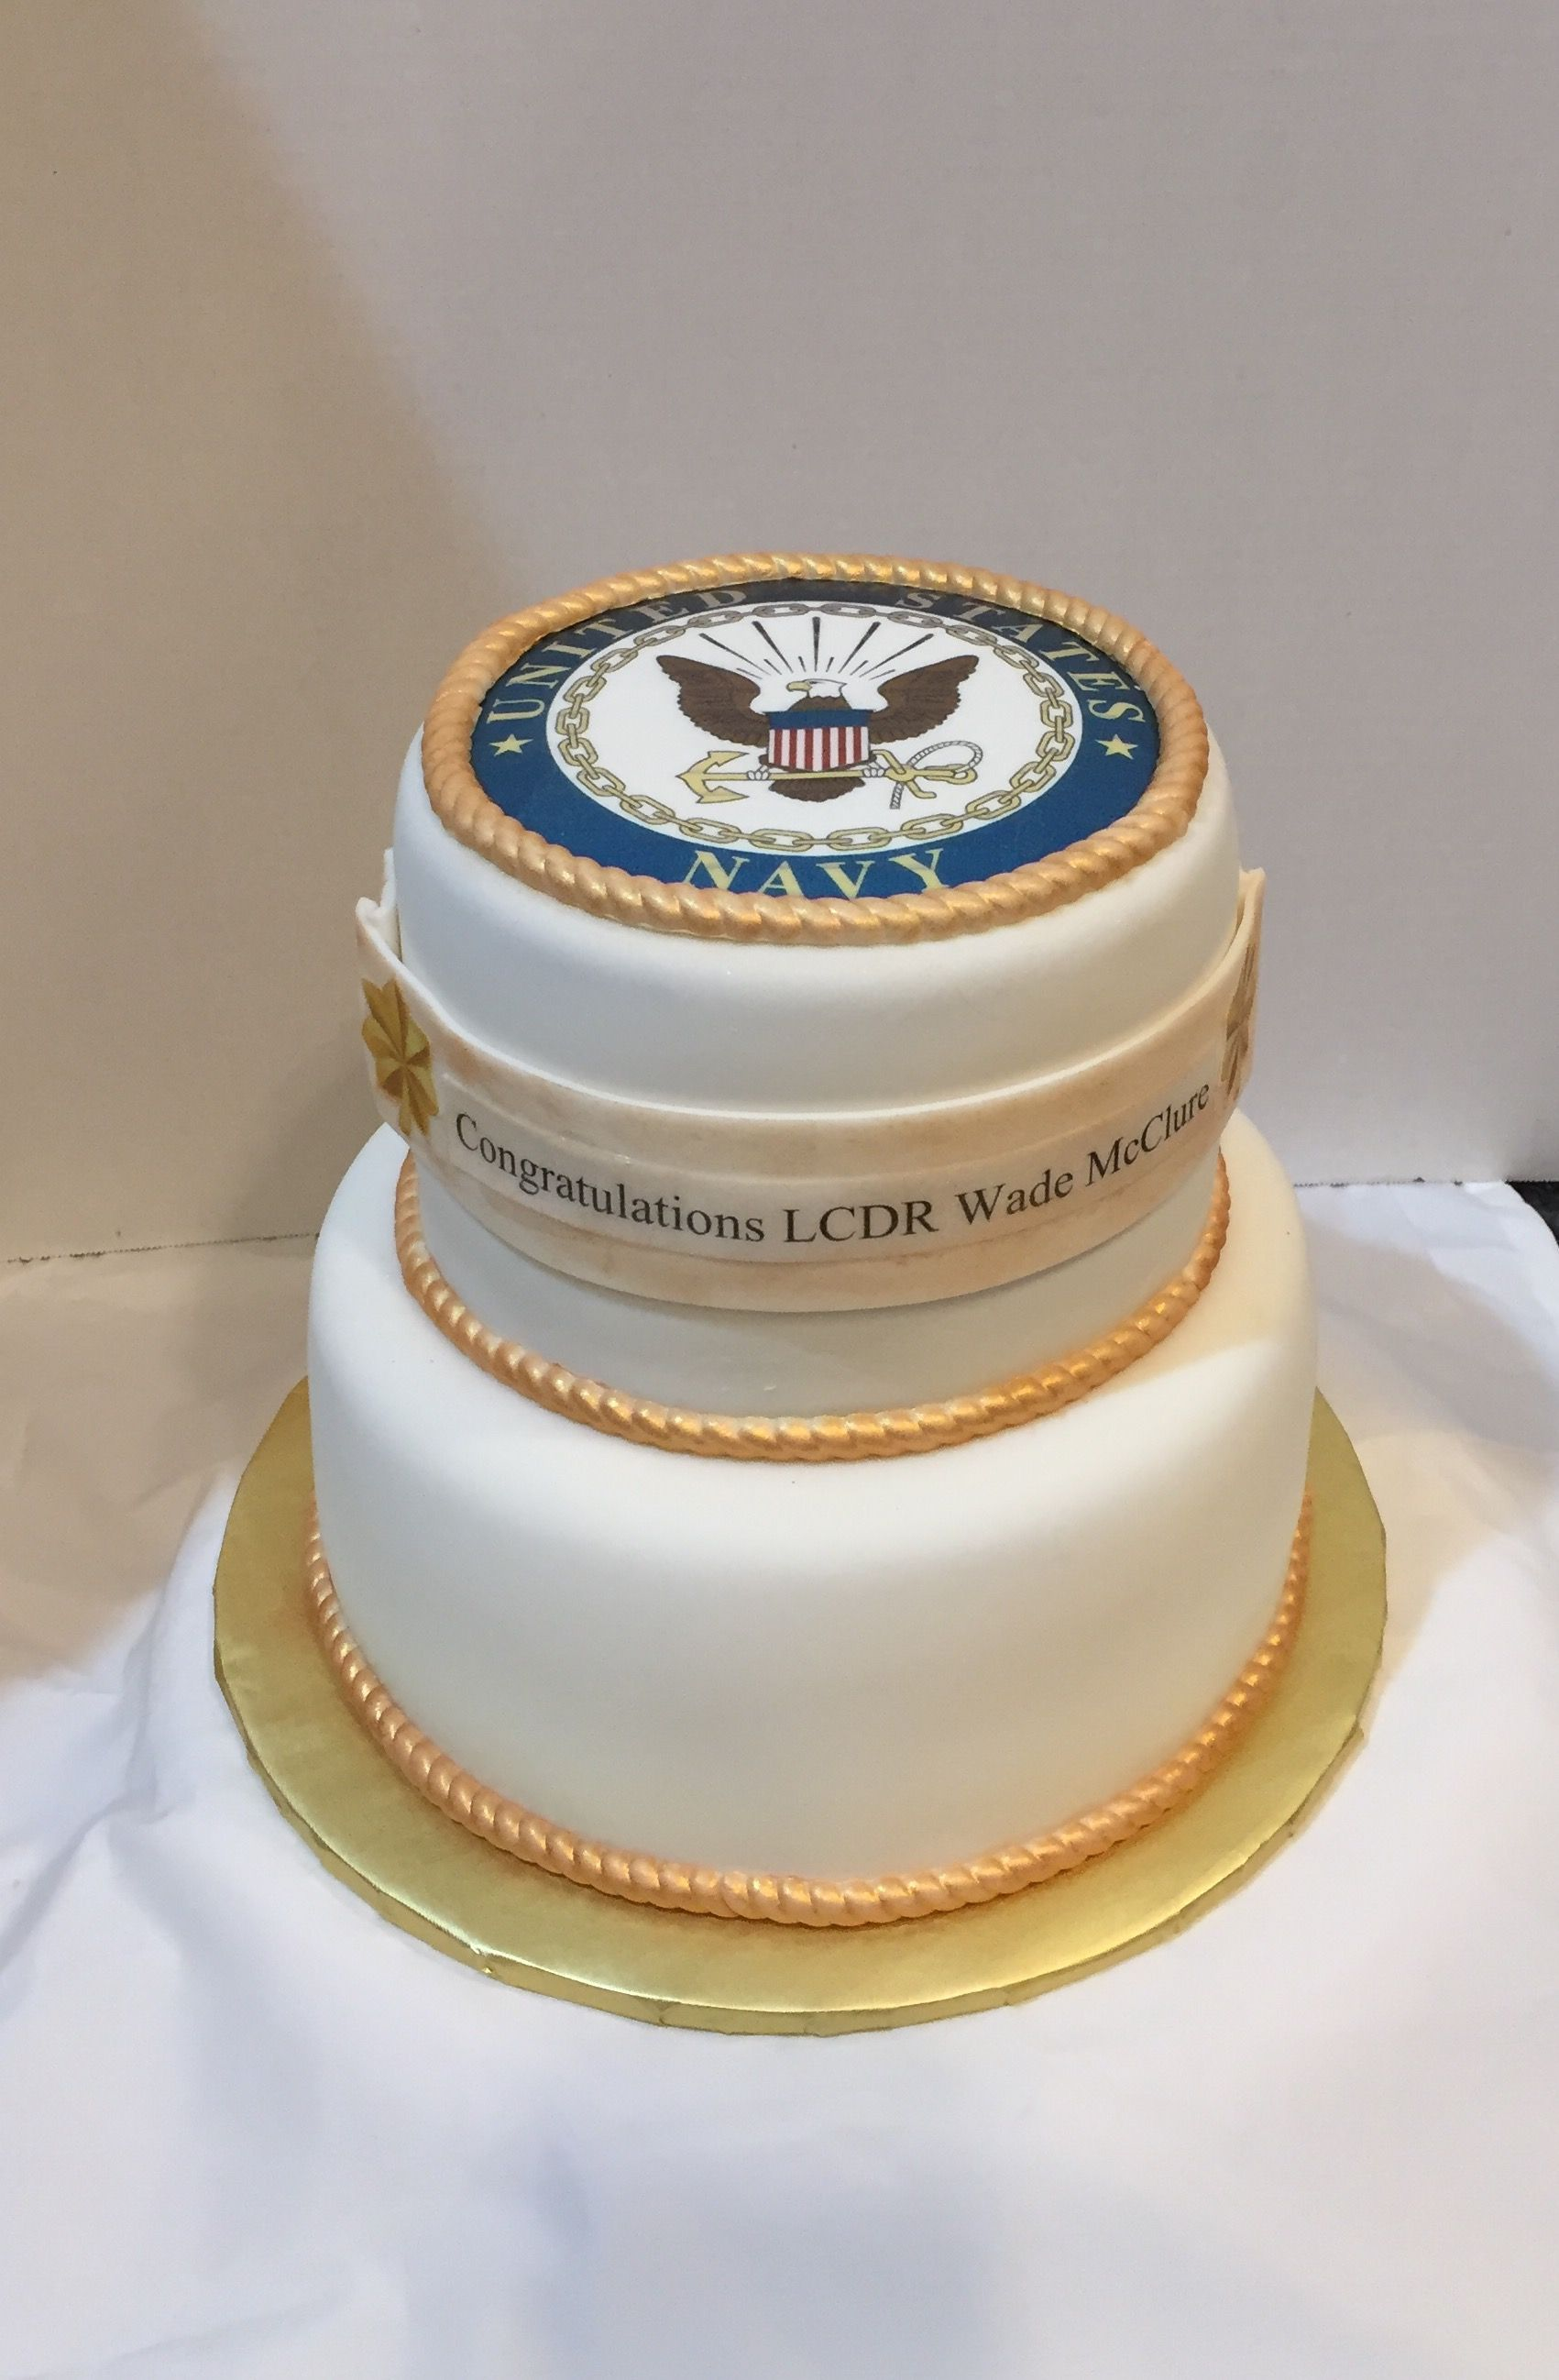 Navy Promotion Cake Cakes Cakes And More Cake Pinterest